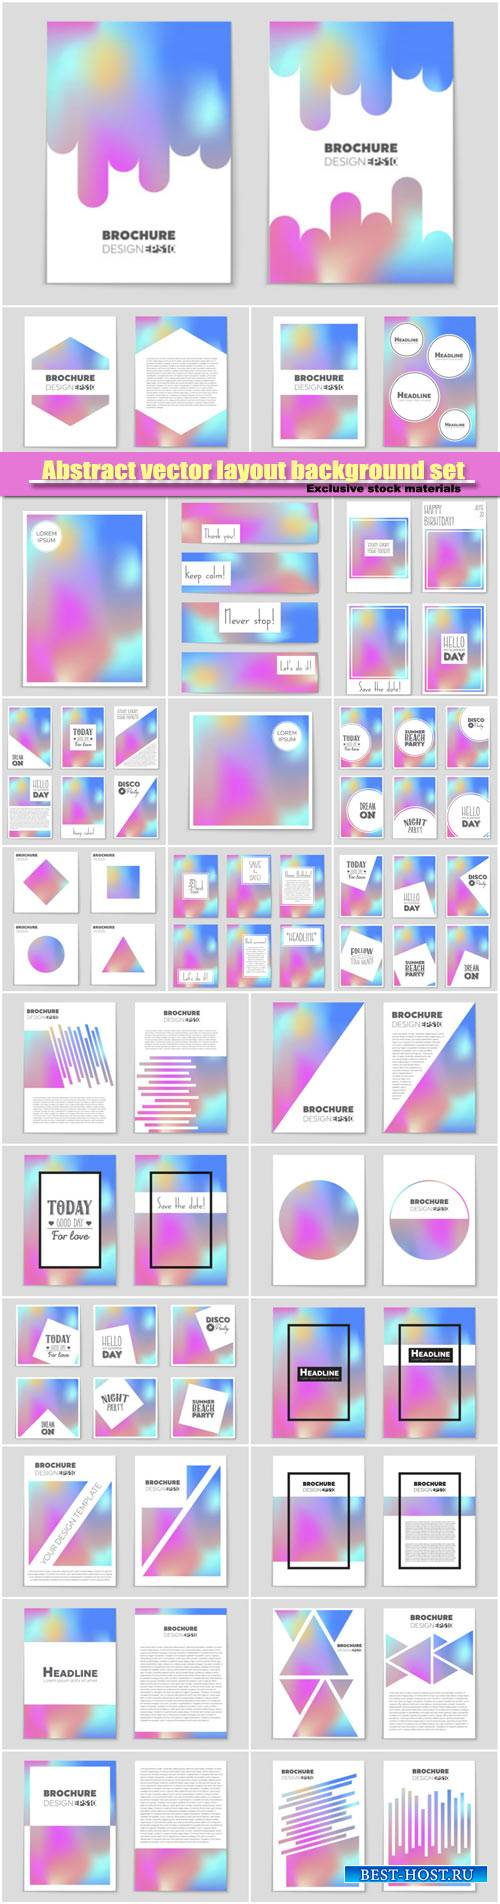 Abstract vector layout background set, template design, brochure and card s ...